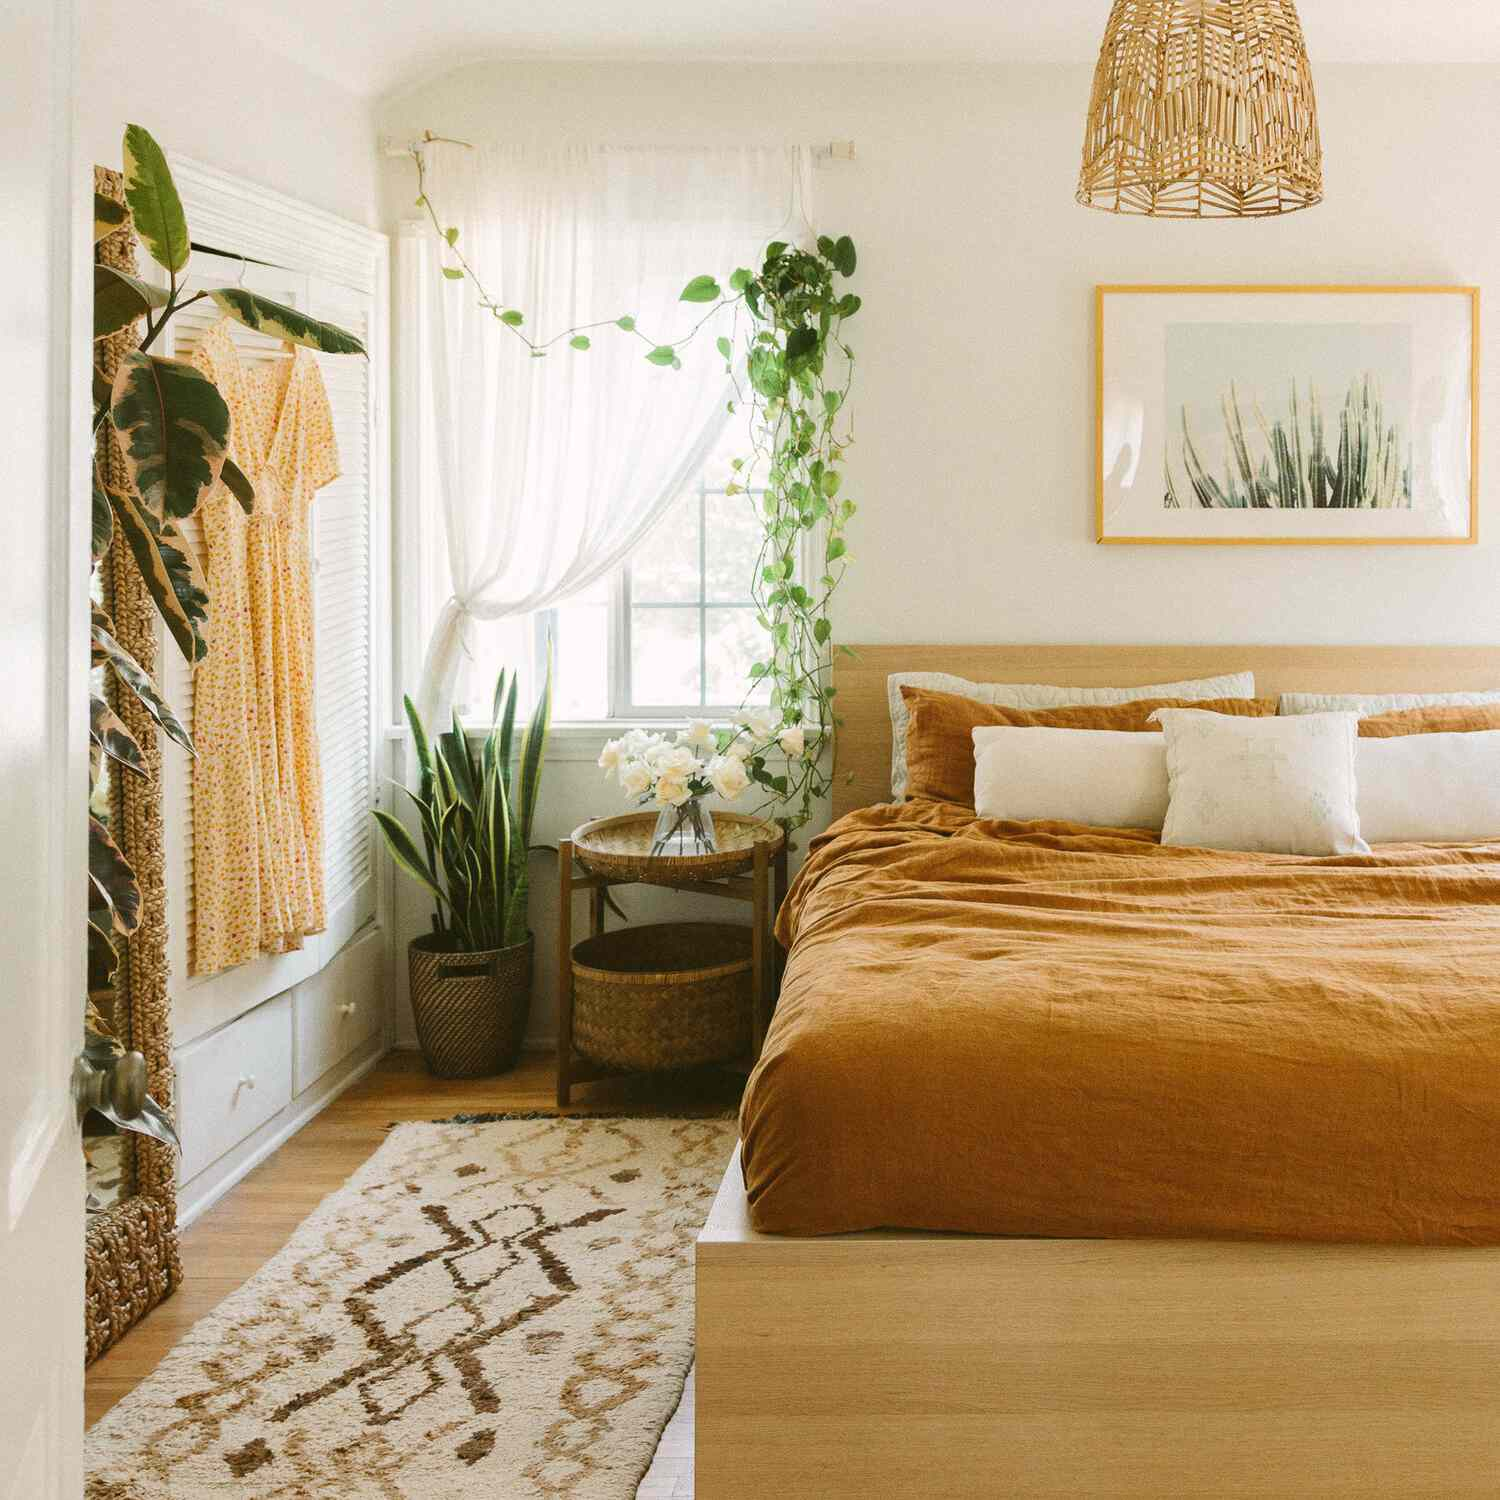 Boho rental bedroom with swapped out overhead light fixture